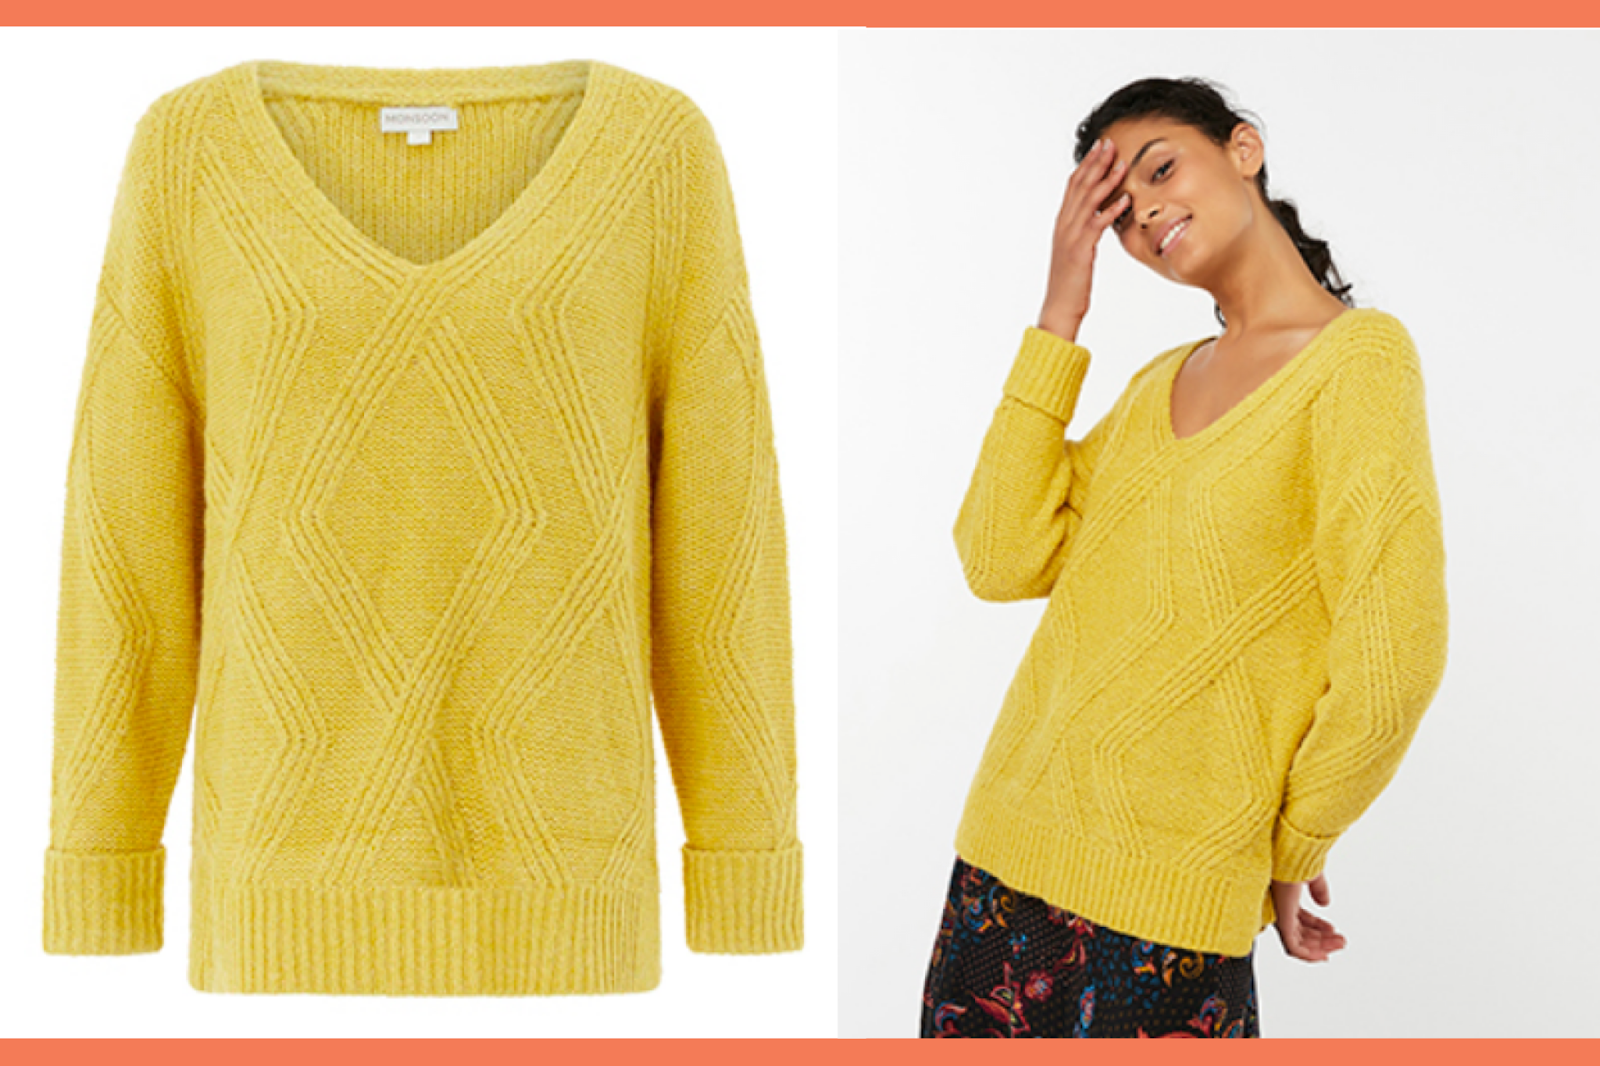 Monsoon Yellow Cece Cable Knit